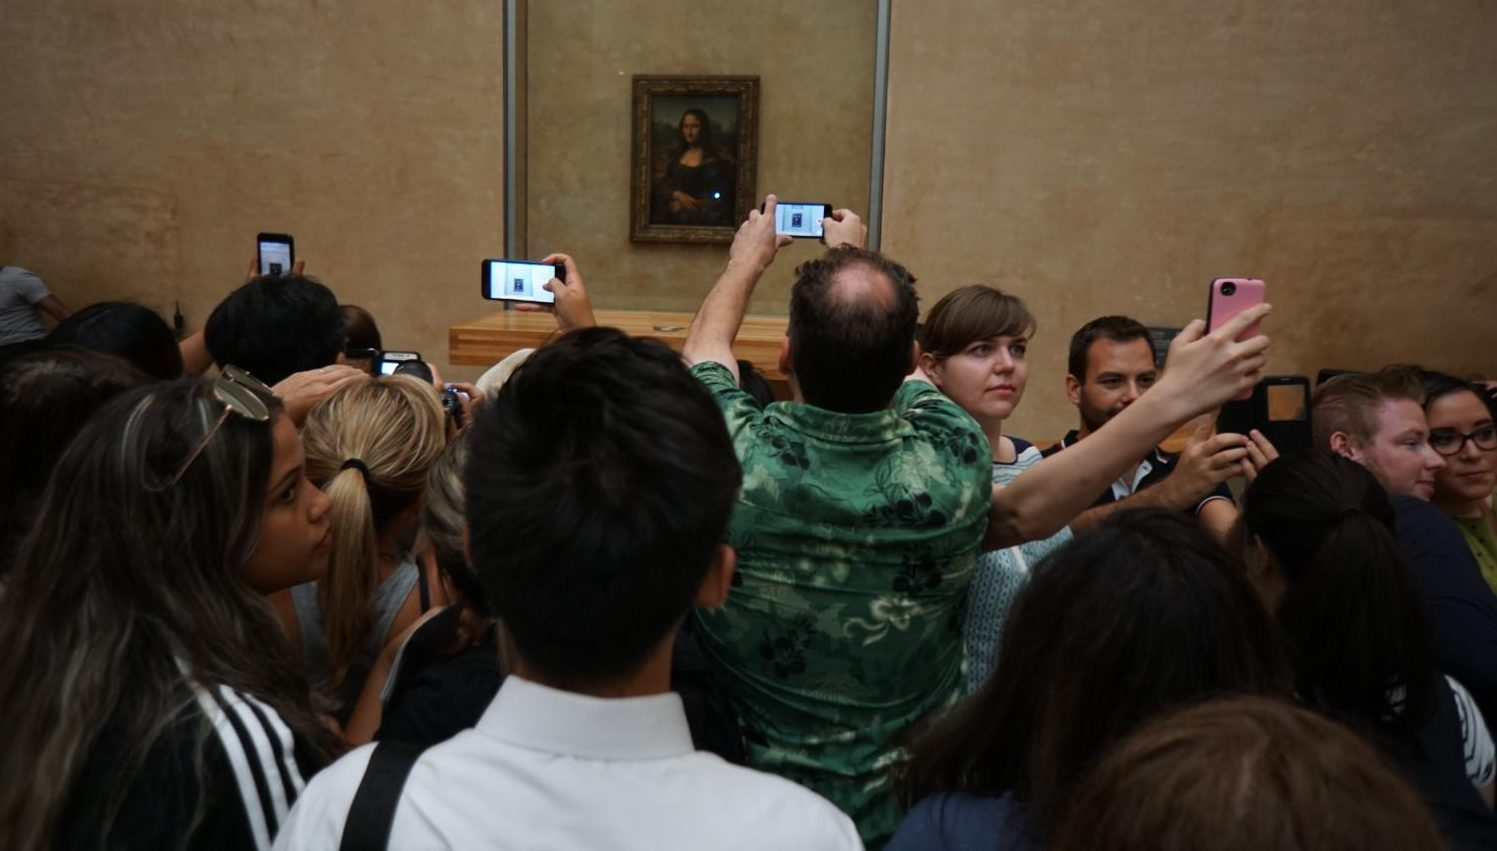 Perhaps when at the Louvre you should look at the Mona Lisa with your own eyes instead of through the lens of your SmartPhone. Just a thought.